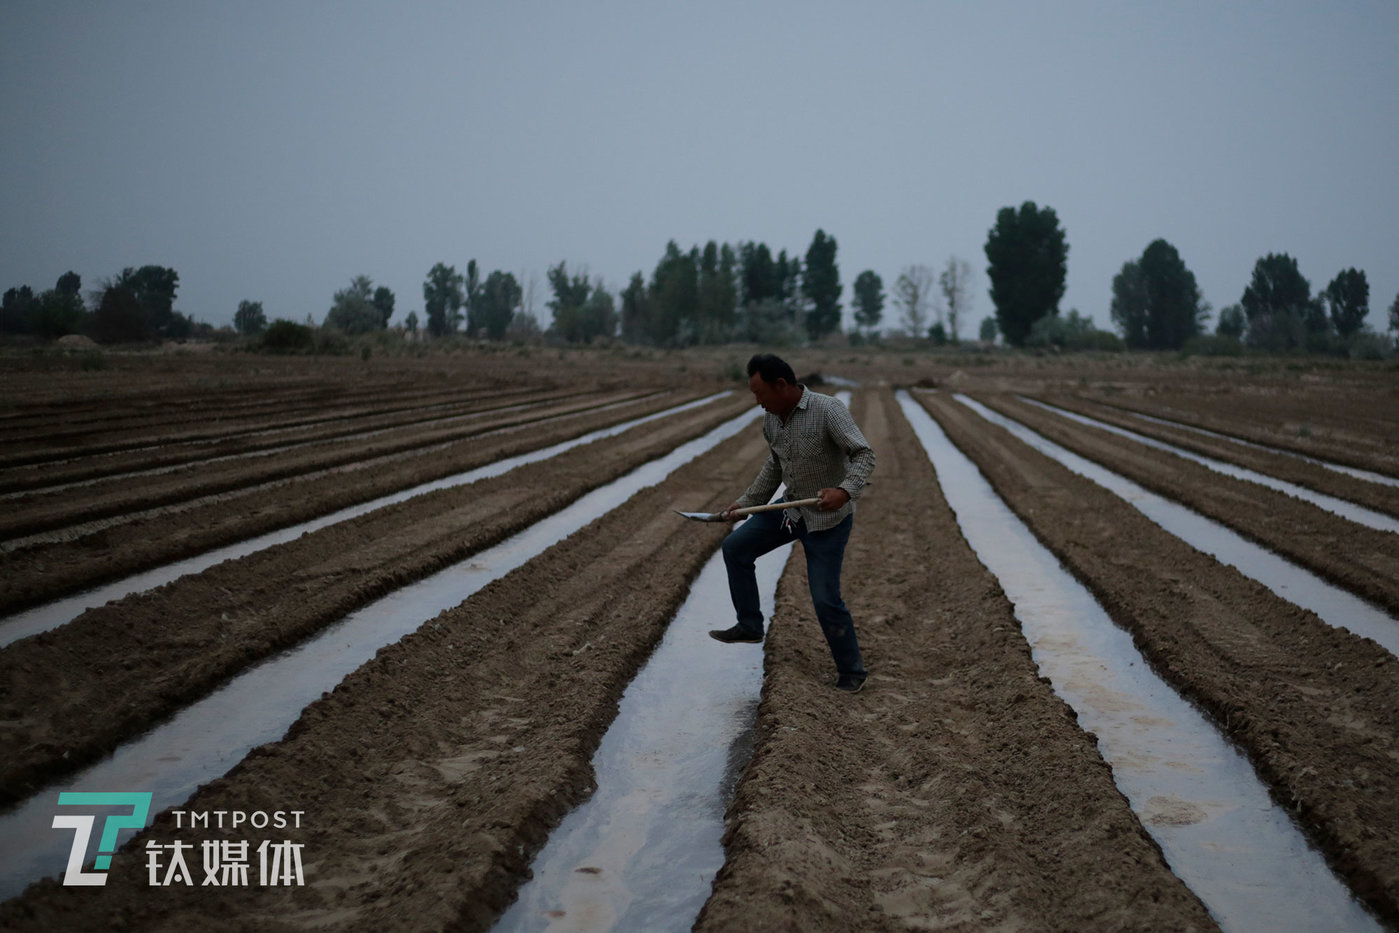 Having diverted water to his field, Zhiming Xue runs an inspection to check that the water in the trenches is at a safe level. Before sowing, Xue needs to water each plot of his field twice to ensure the soil both retains moisture and is sufficiently hardened. The local climate is so dry and the soil so sandy that any water irrigated into the field can pass through the soil in under two hours.